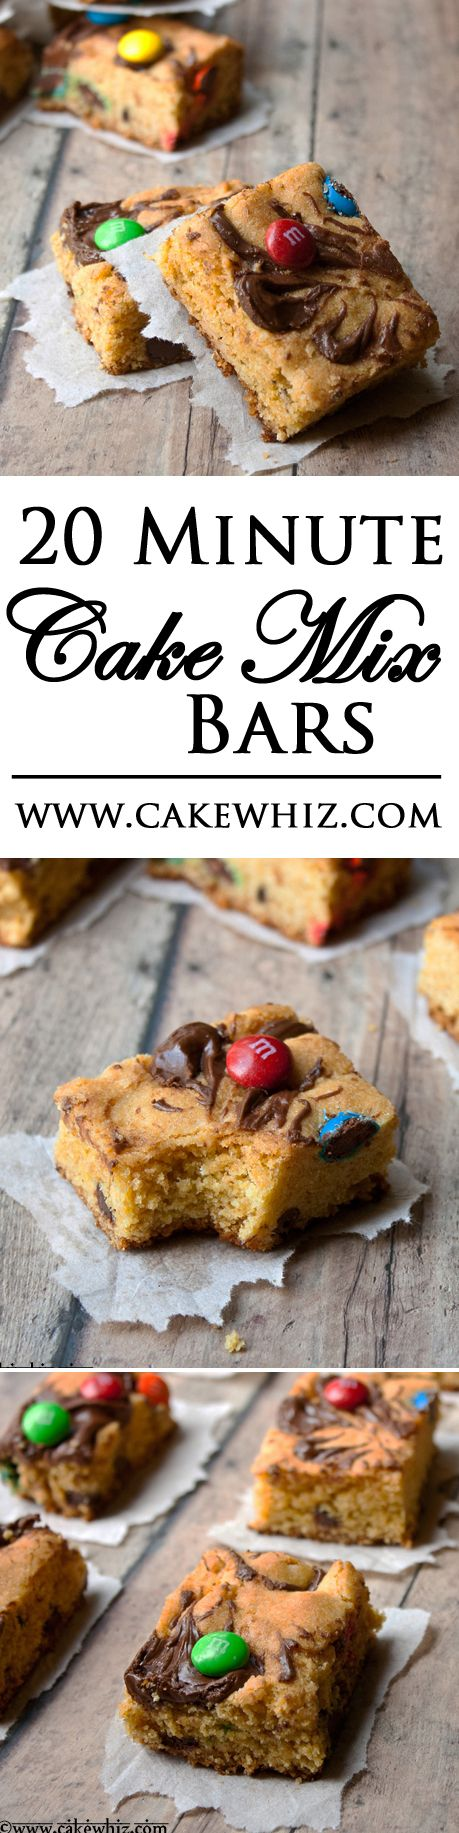 These CAKE MIX BARS are so easy that they are ready in just 20 minutes! Packed with chocolate, Nutella and peanut butter! From cakewhiz.com